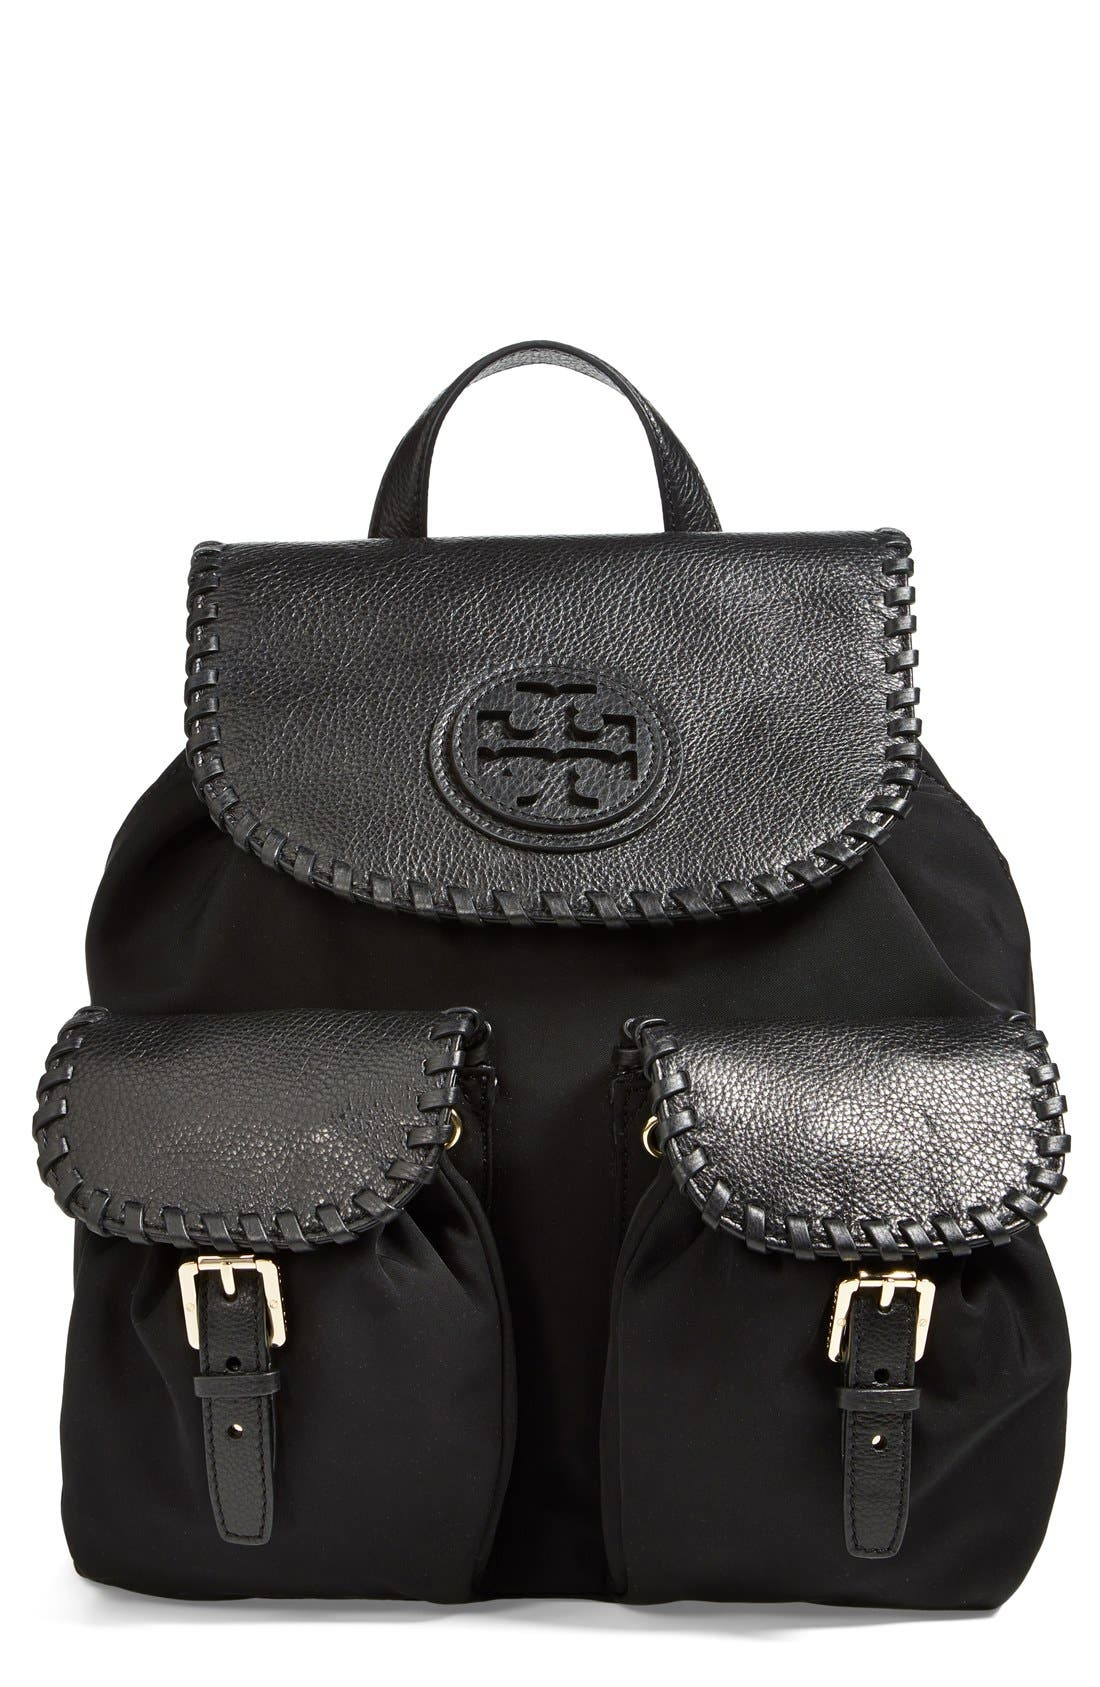 Alternate Image 1 Selected - Tory Burch 'Marion' Backpack